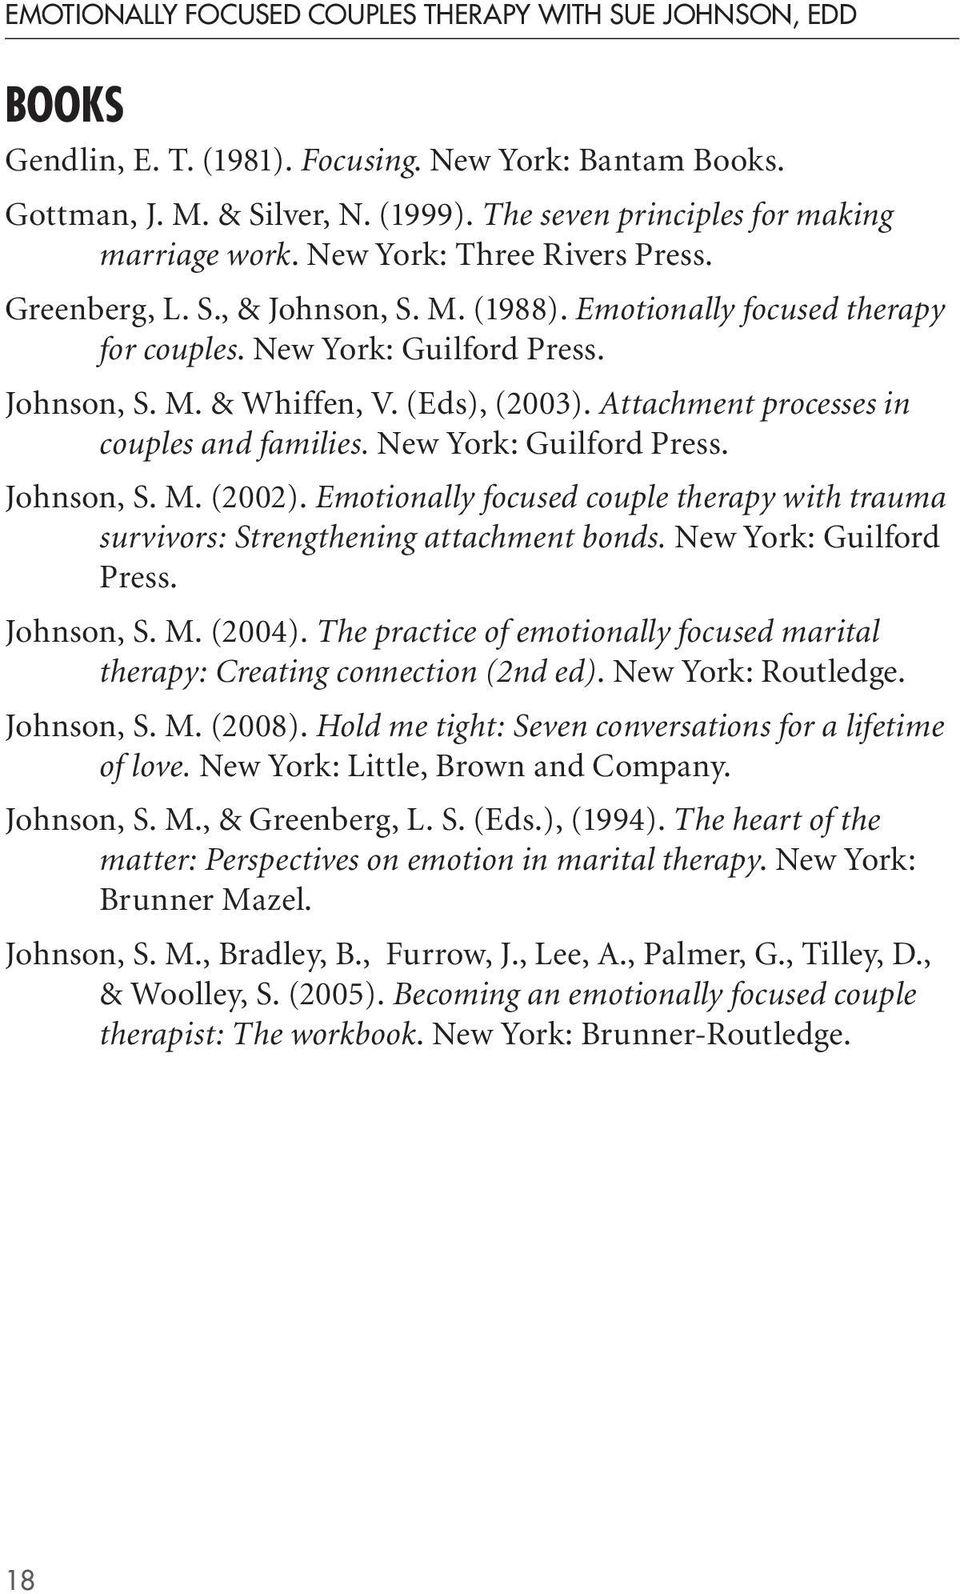 (Eds), (2003). Attachment processes in couples and families. New York: Guilford Press. Johnson, S. M. (2002). Emotionally focused couple therapy with trauma survivors: Strengthening attachment bonds.